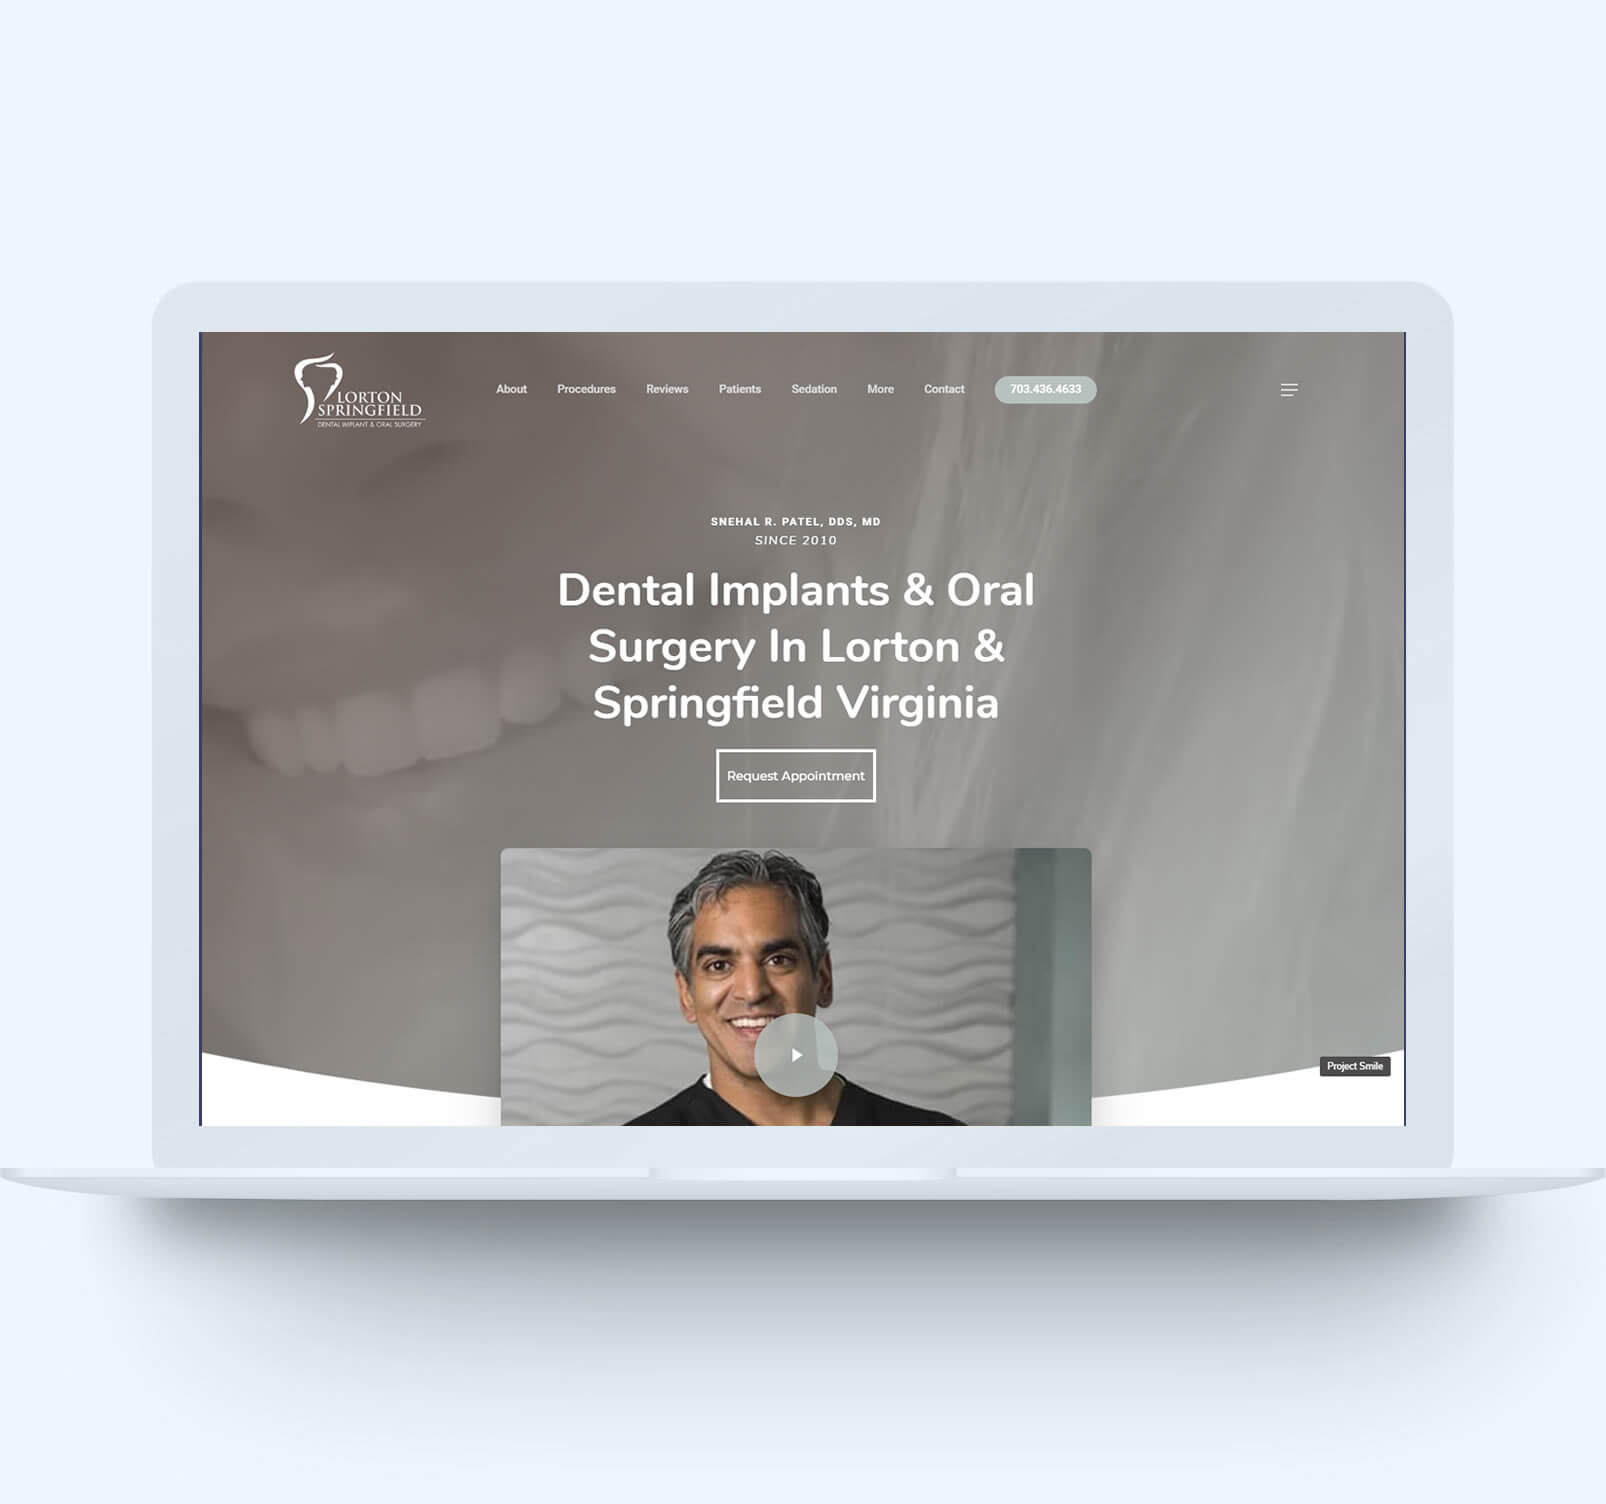 lorton-springfield-dental-implants-wisdom-teeth-removal